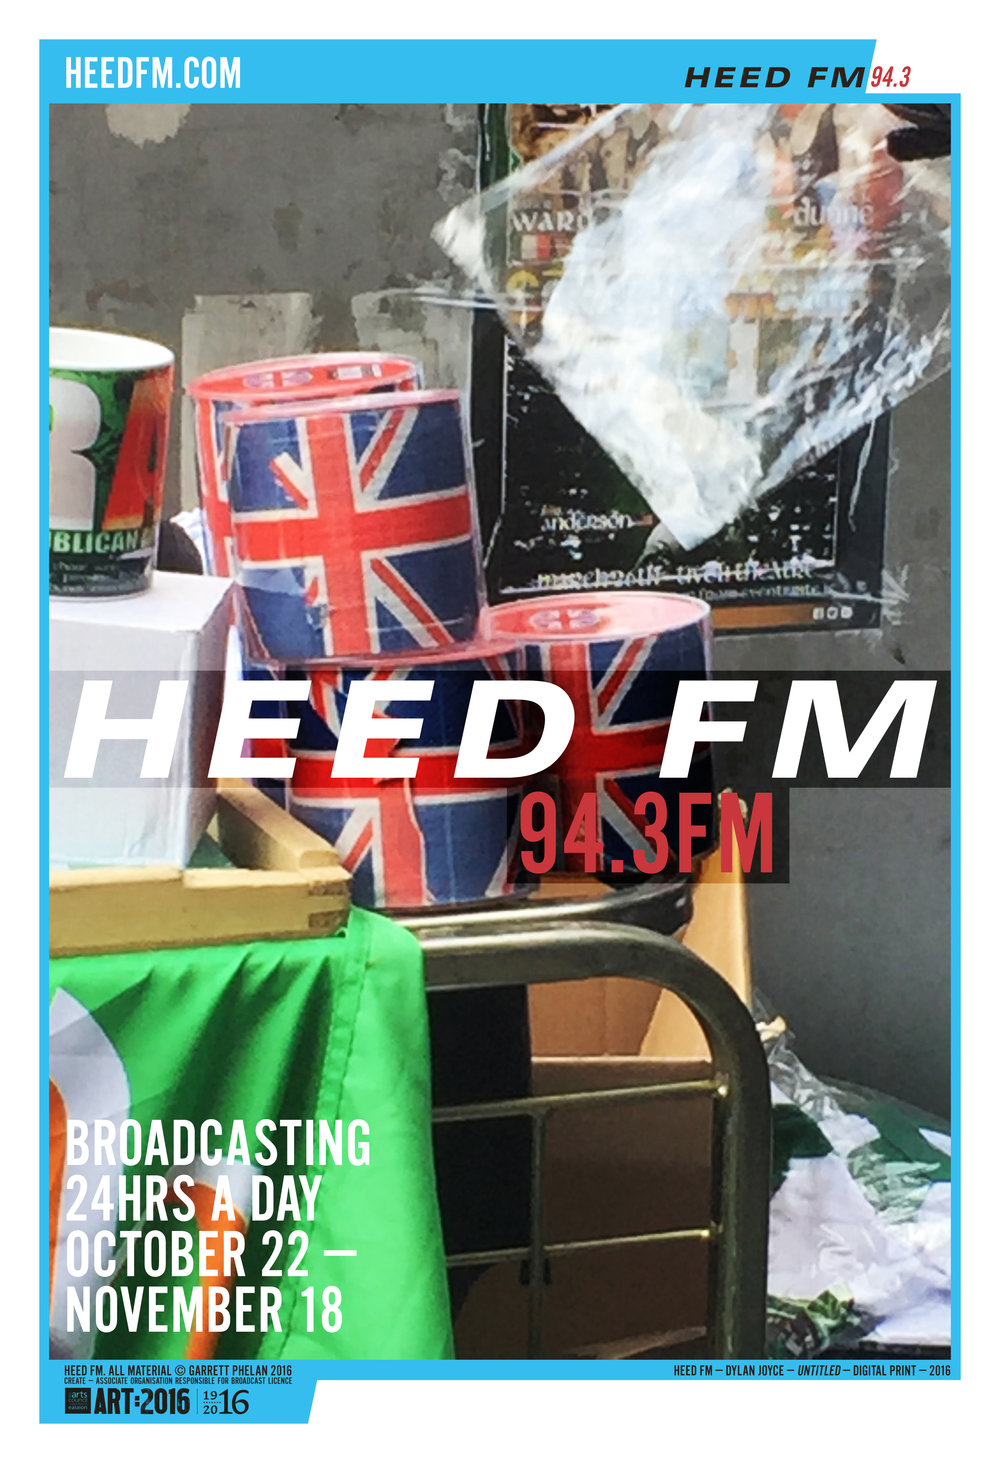 heed fm 4 sheets artwork-25.jpg